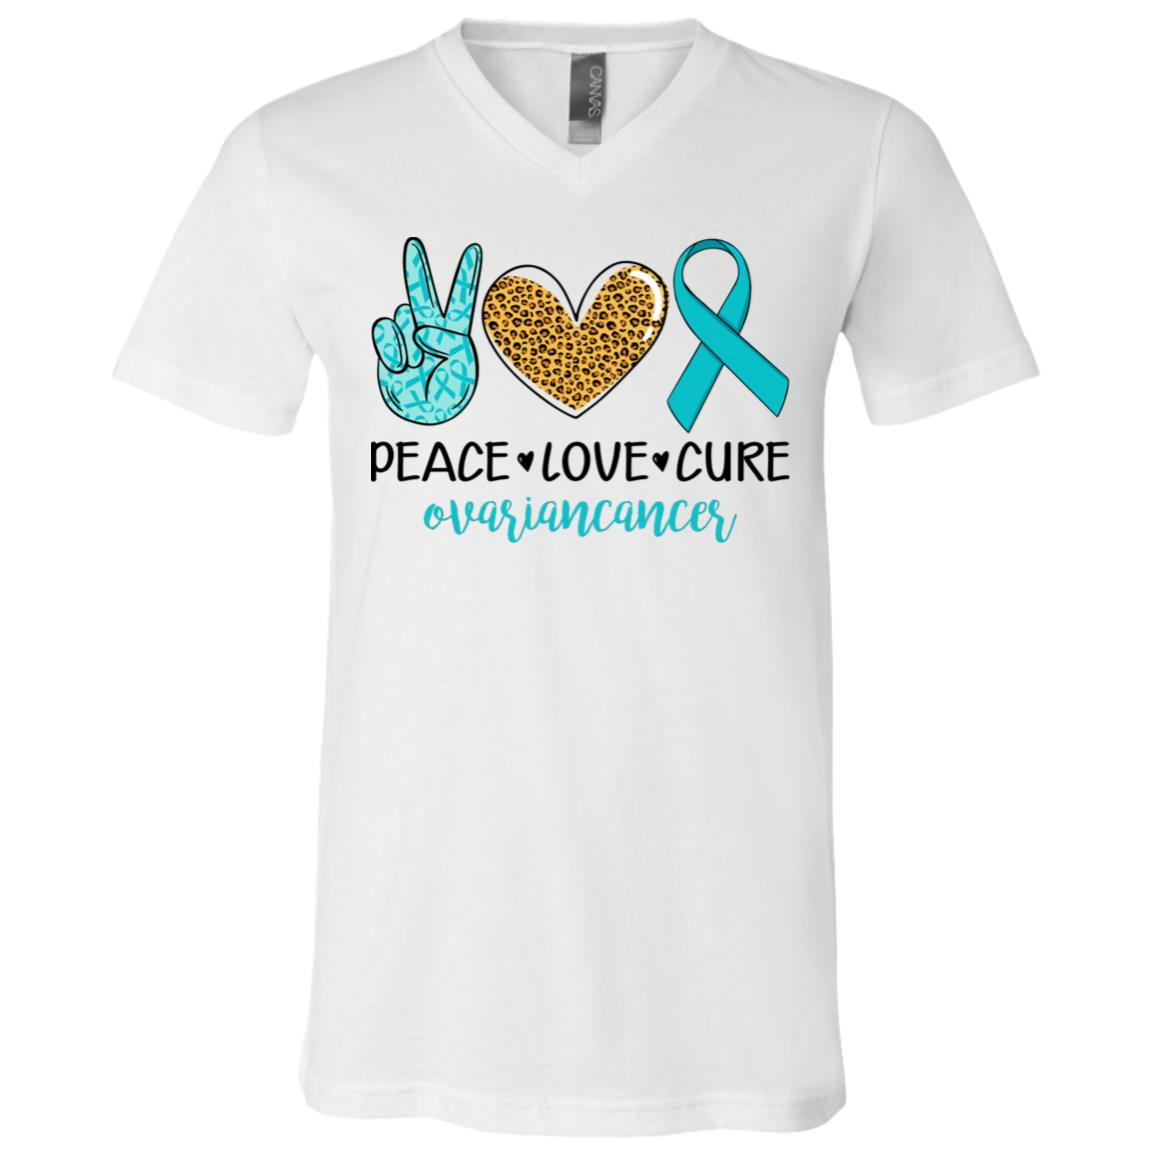 Ovarian Cancer Shirt Peace Love Cu Re Ovarian Cancer Awareness T Shirt V Neck Cubebik